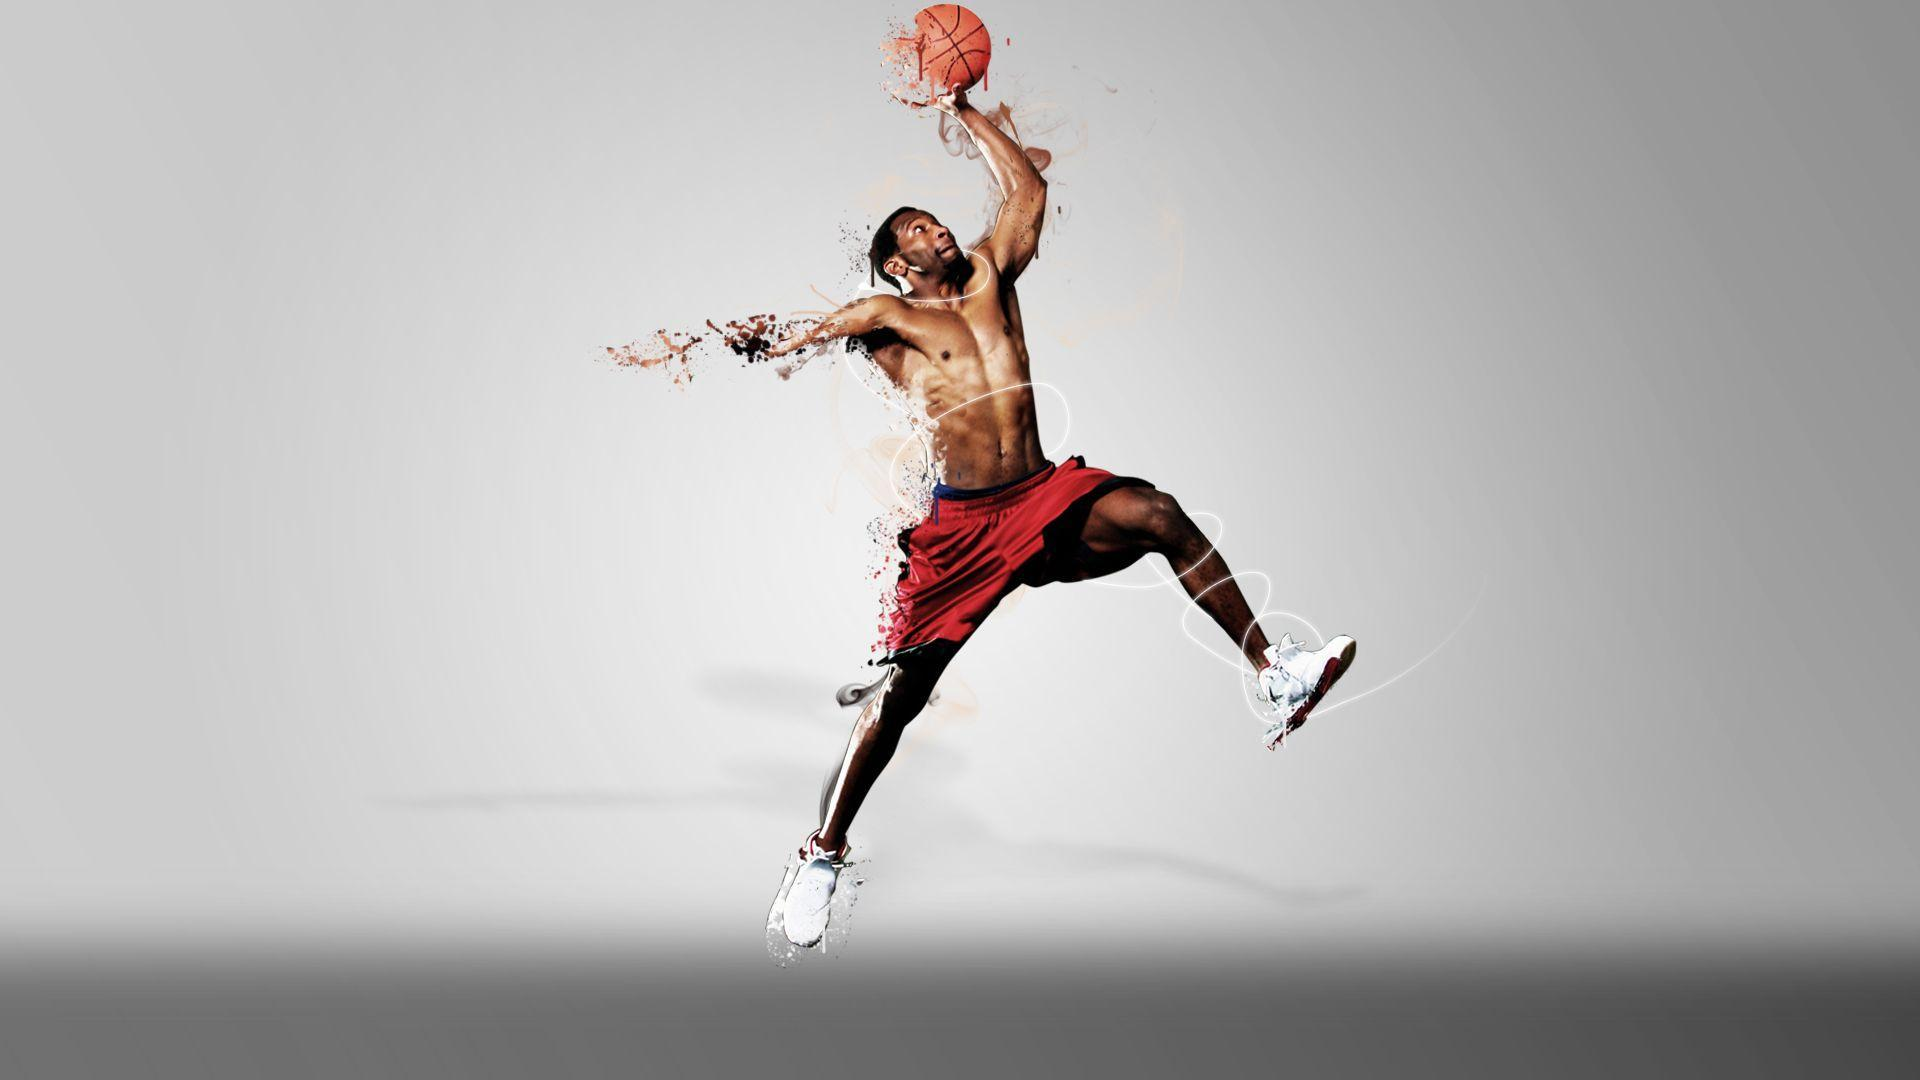 Sports Wallpapers Top HD Sports Photos BA Quality HD